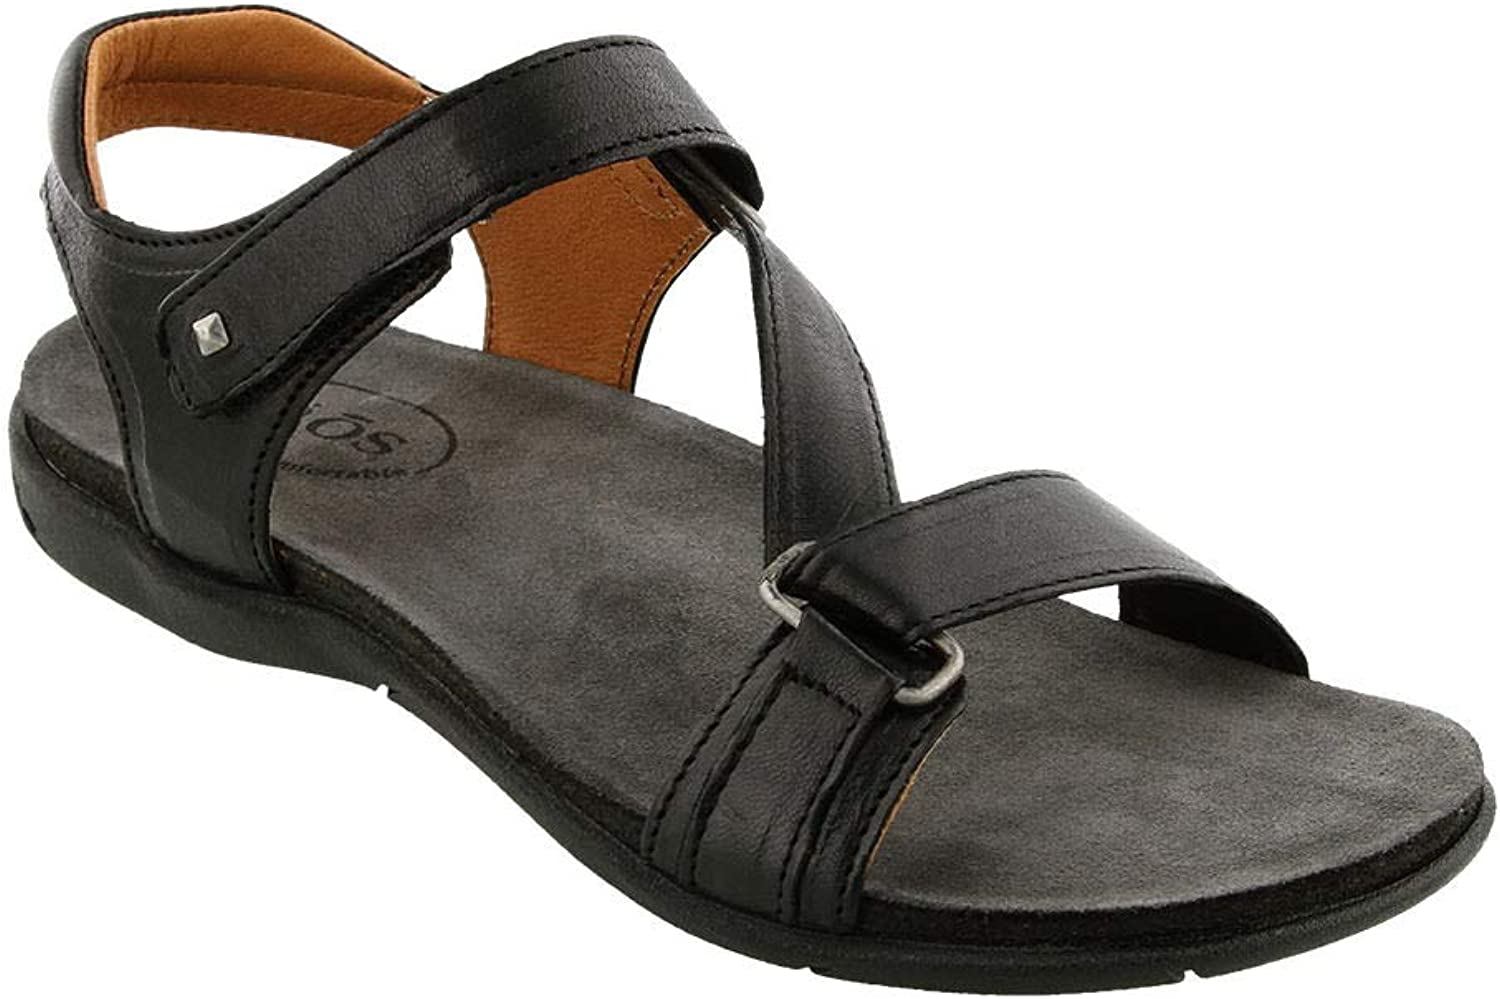 Taos Women's Zeal Black Leather Sandal 40 M EU   9-9.5 B(M) US